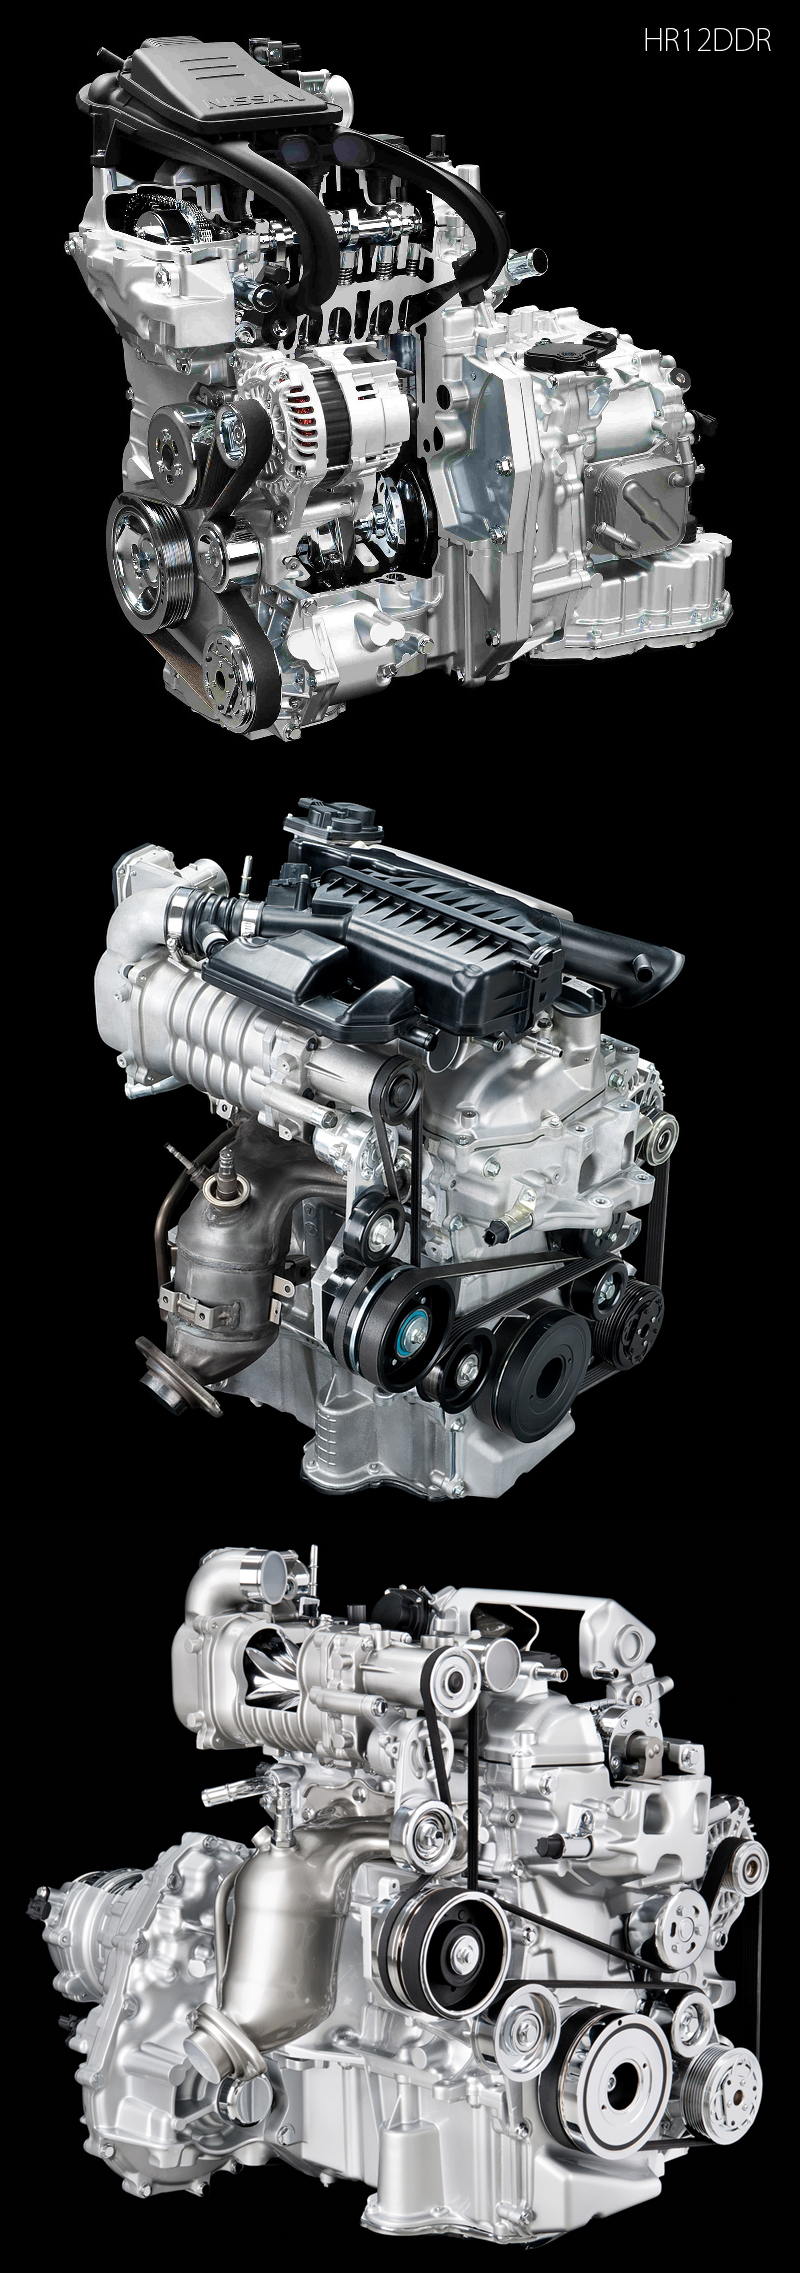 2017_03_Nissan_Note_Engine_01_HR12DDR